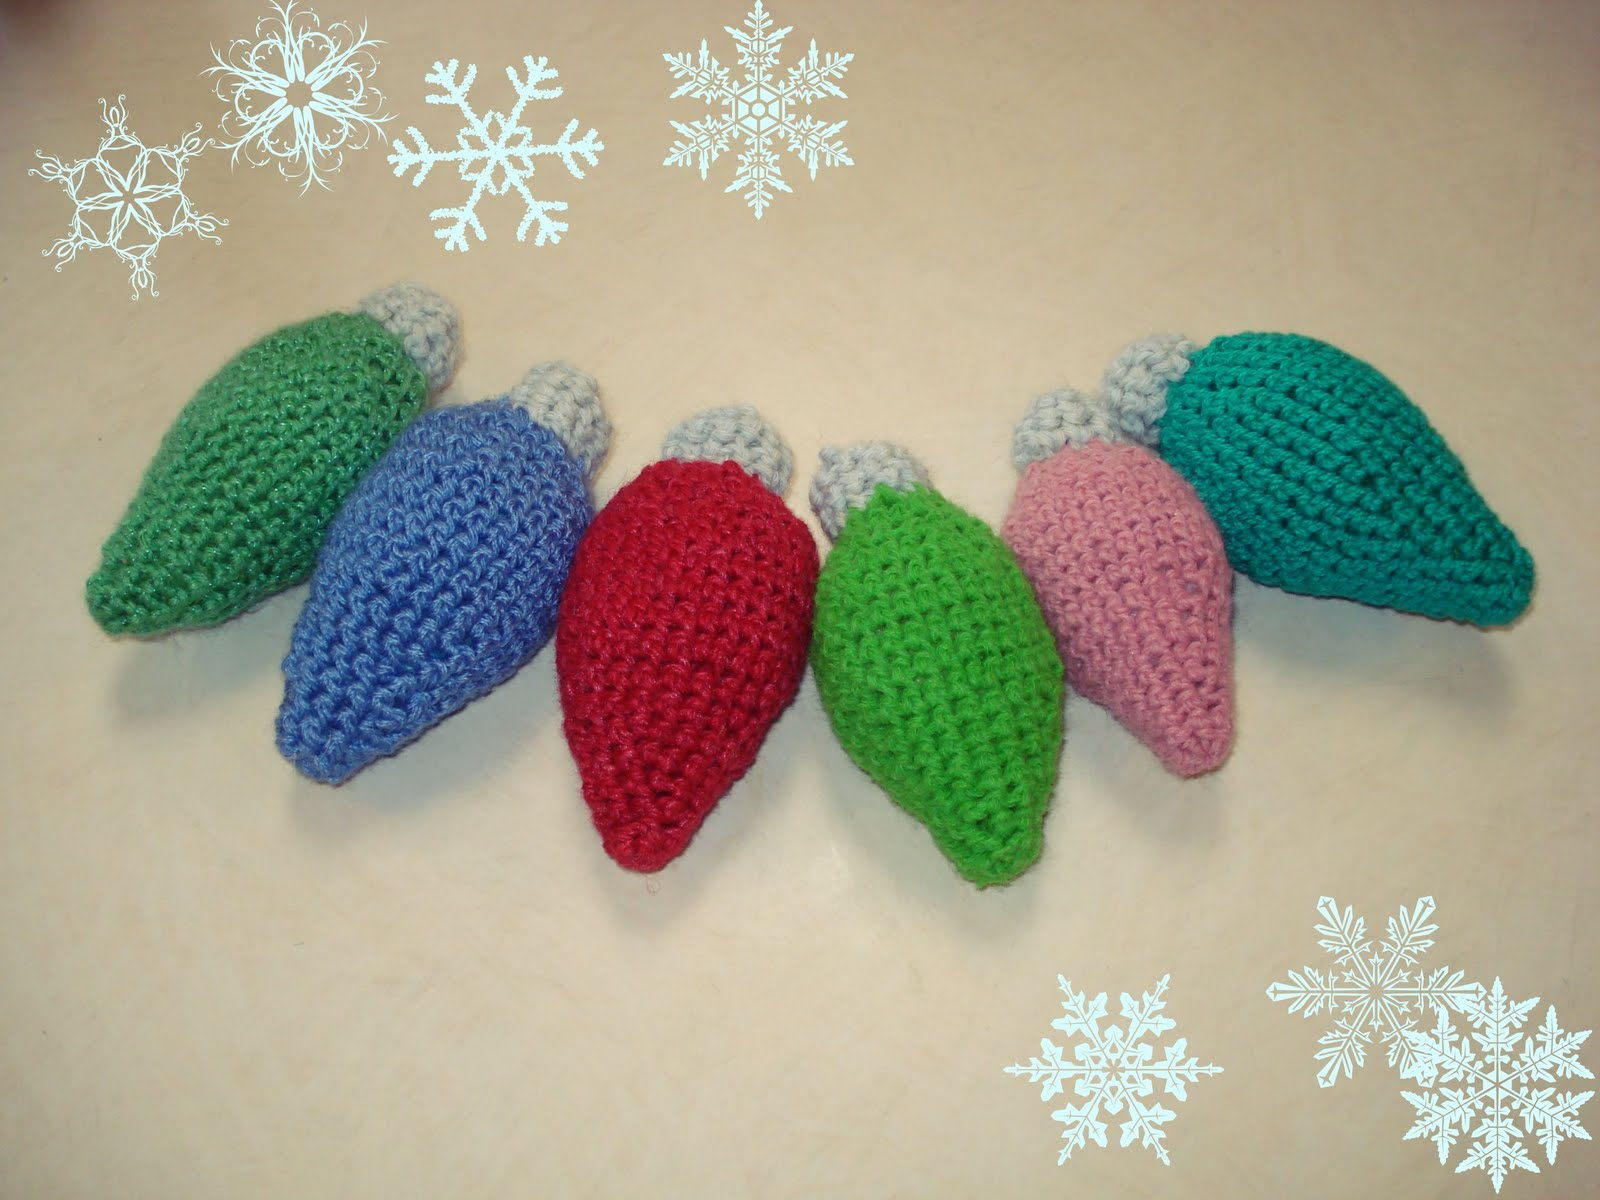 Crochet Ornaments : twobutterflies: Crocheted Vintage Christmas Bulb Ornaments